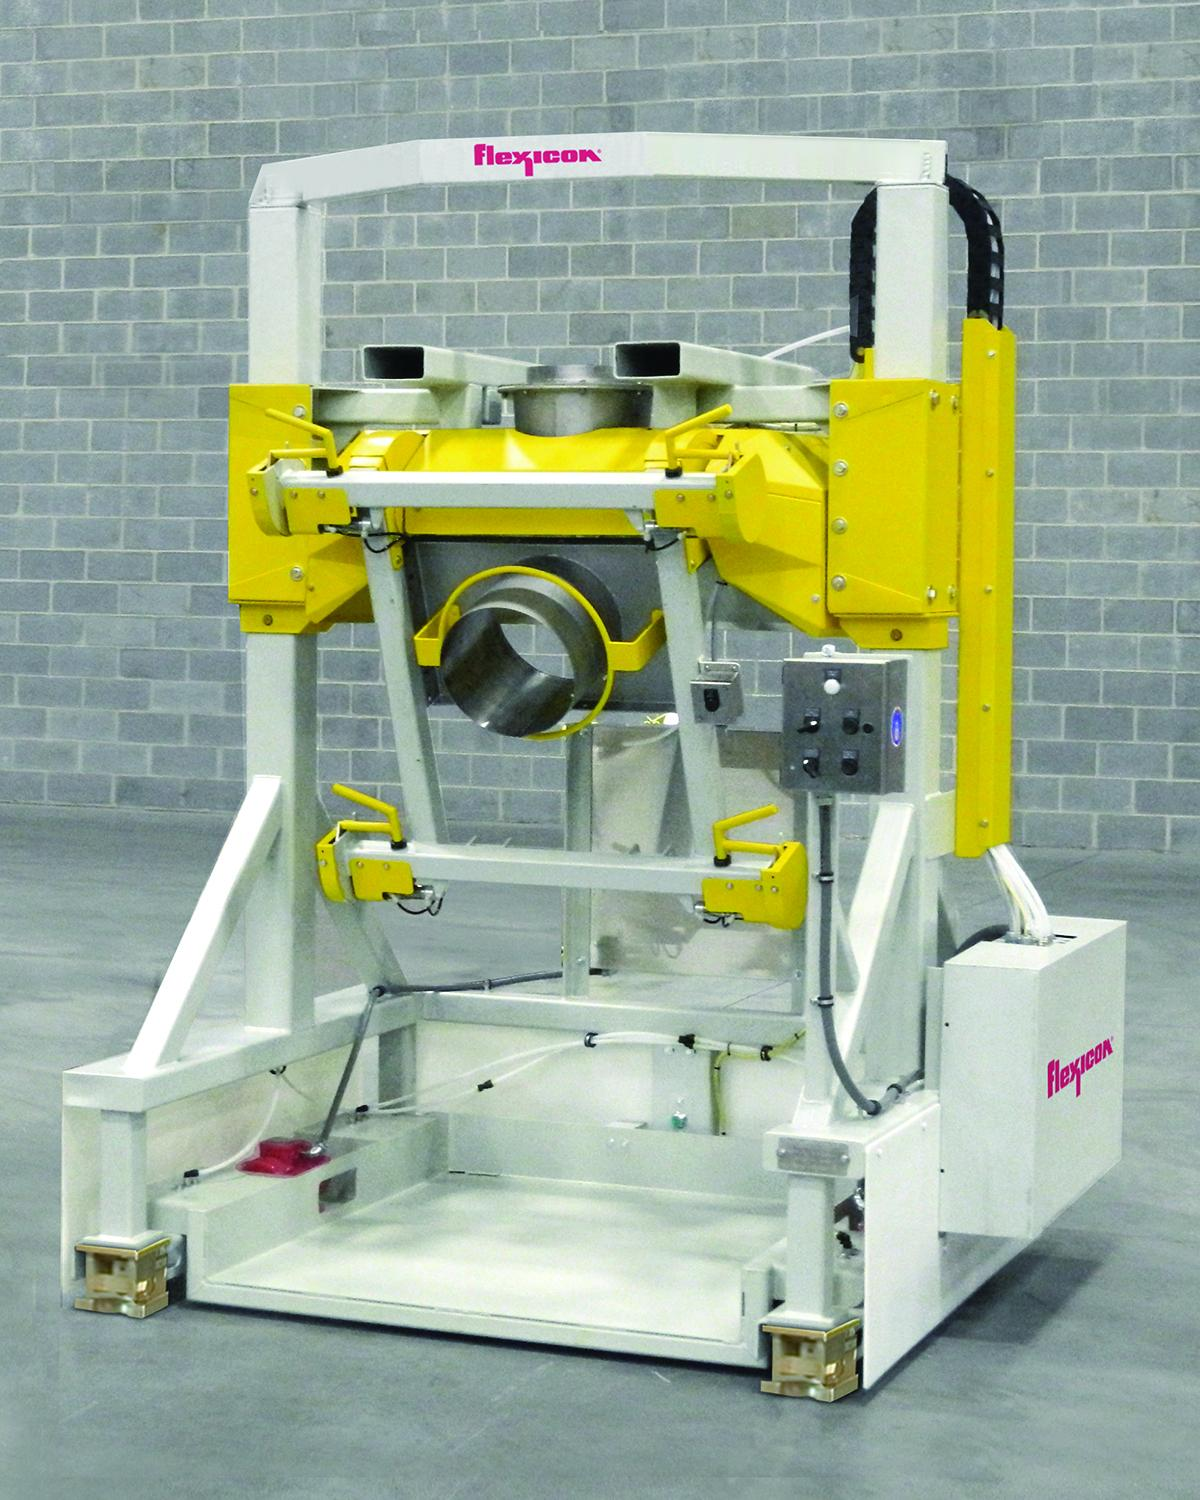 Flexicon's Rear-Post Bulk Bag Filler with Swing-Down fill head and low profile deck allows safe, rapid spout connections and removal of filled bags using a pallet jack